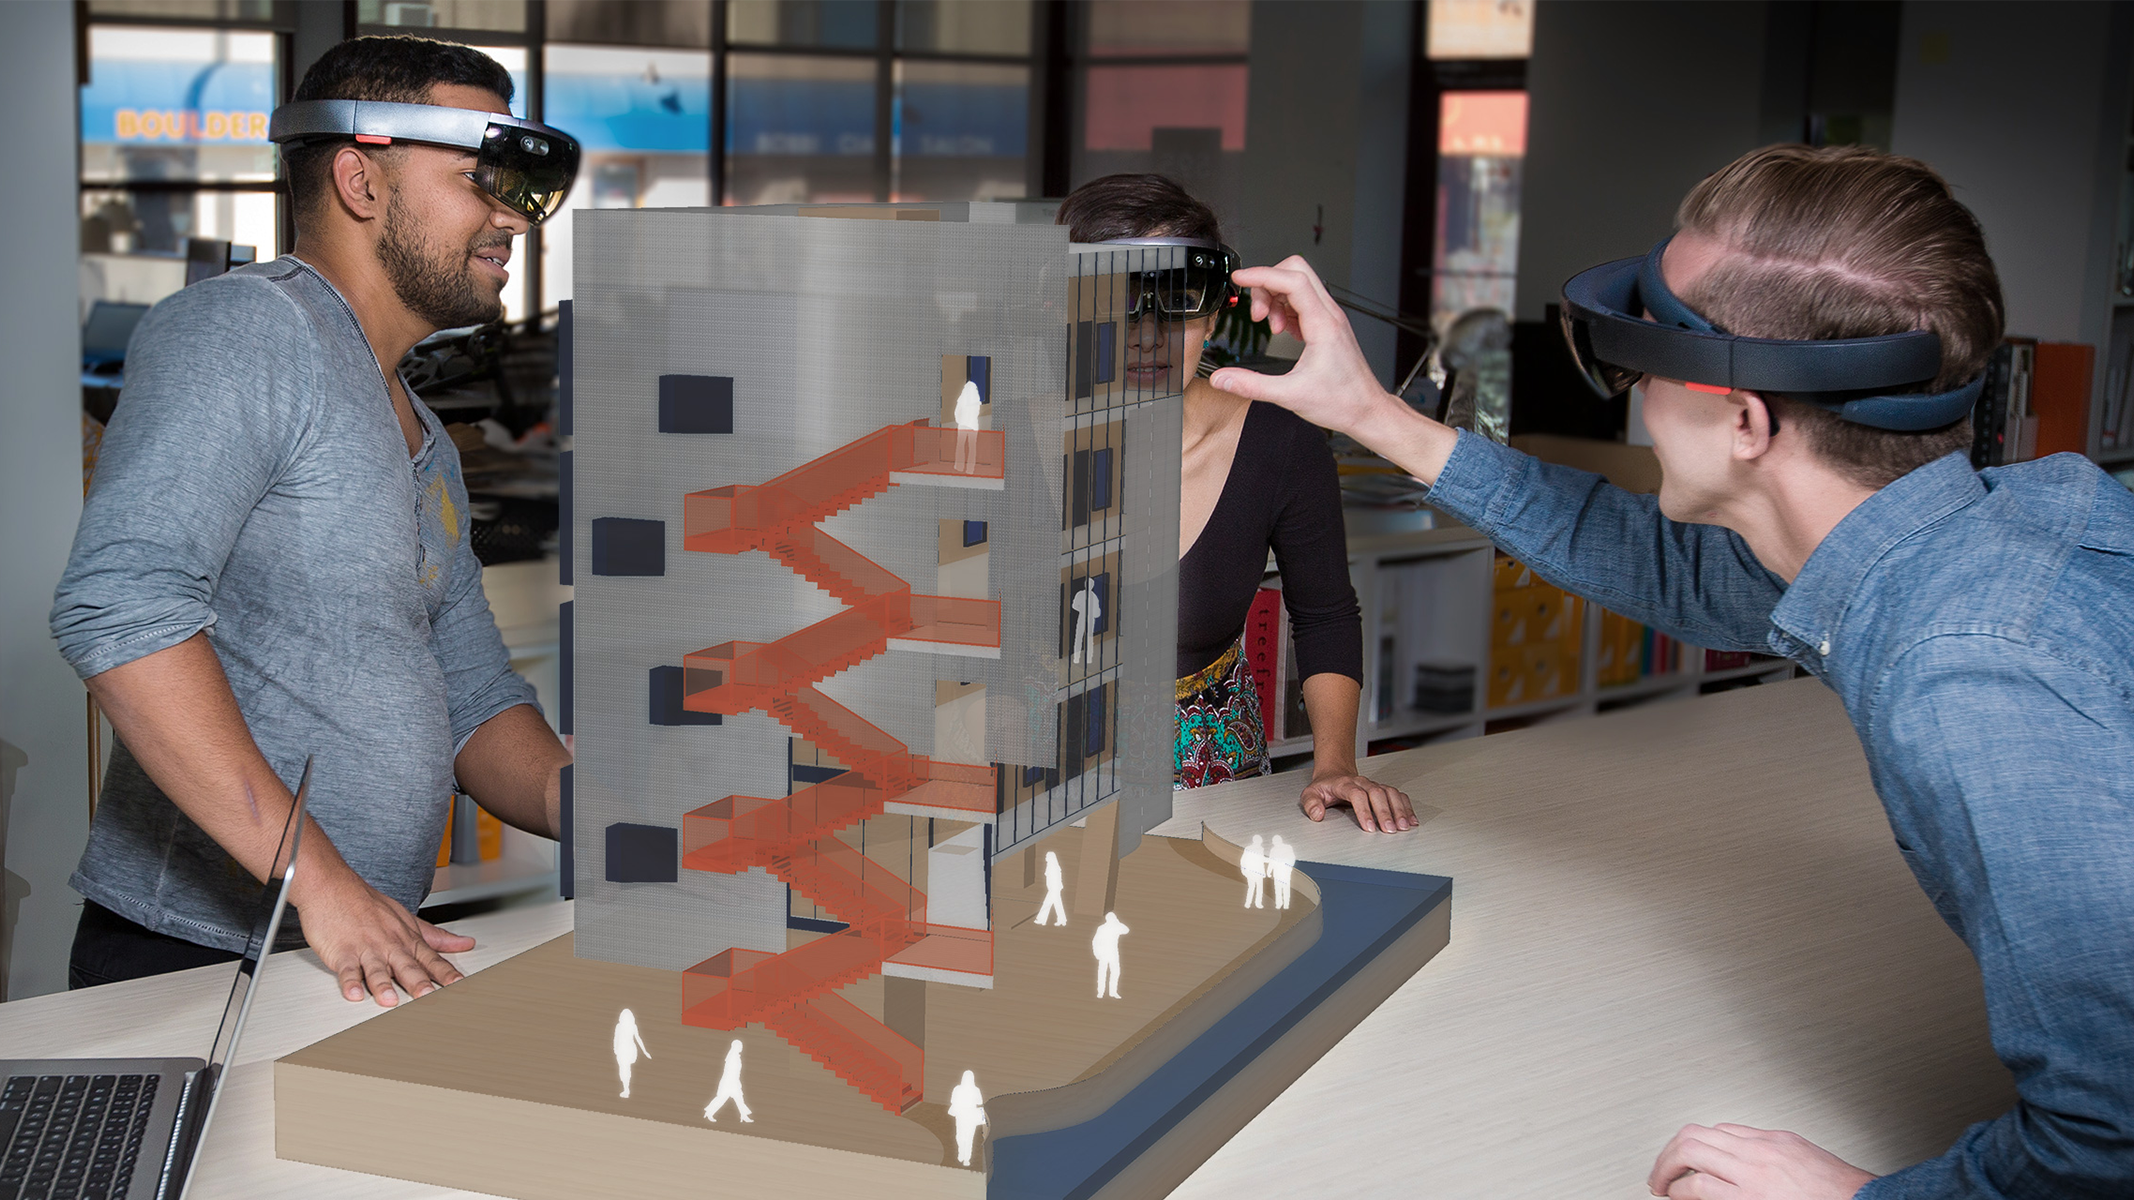 Now You Can Experience All The Realities With Sketchup Viewer